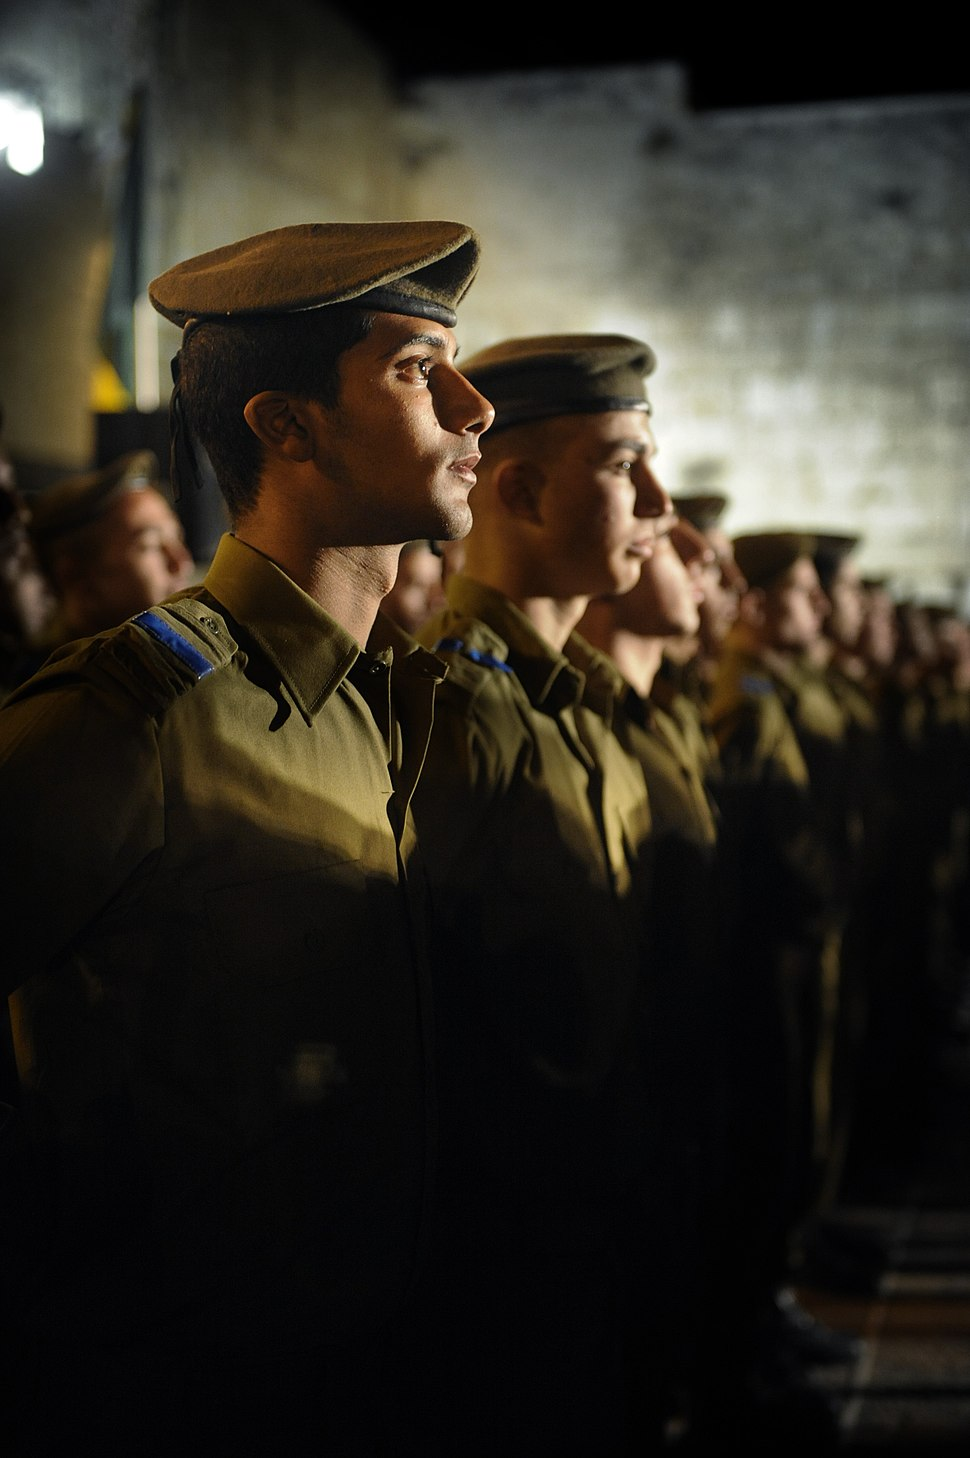 Flickr - Israel Defense Forces - Golani Swearing-In Ceremony, Jan 2011